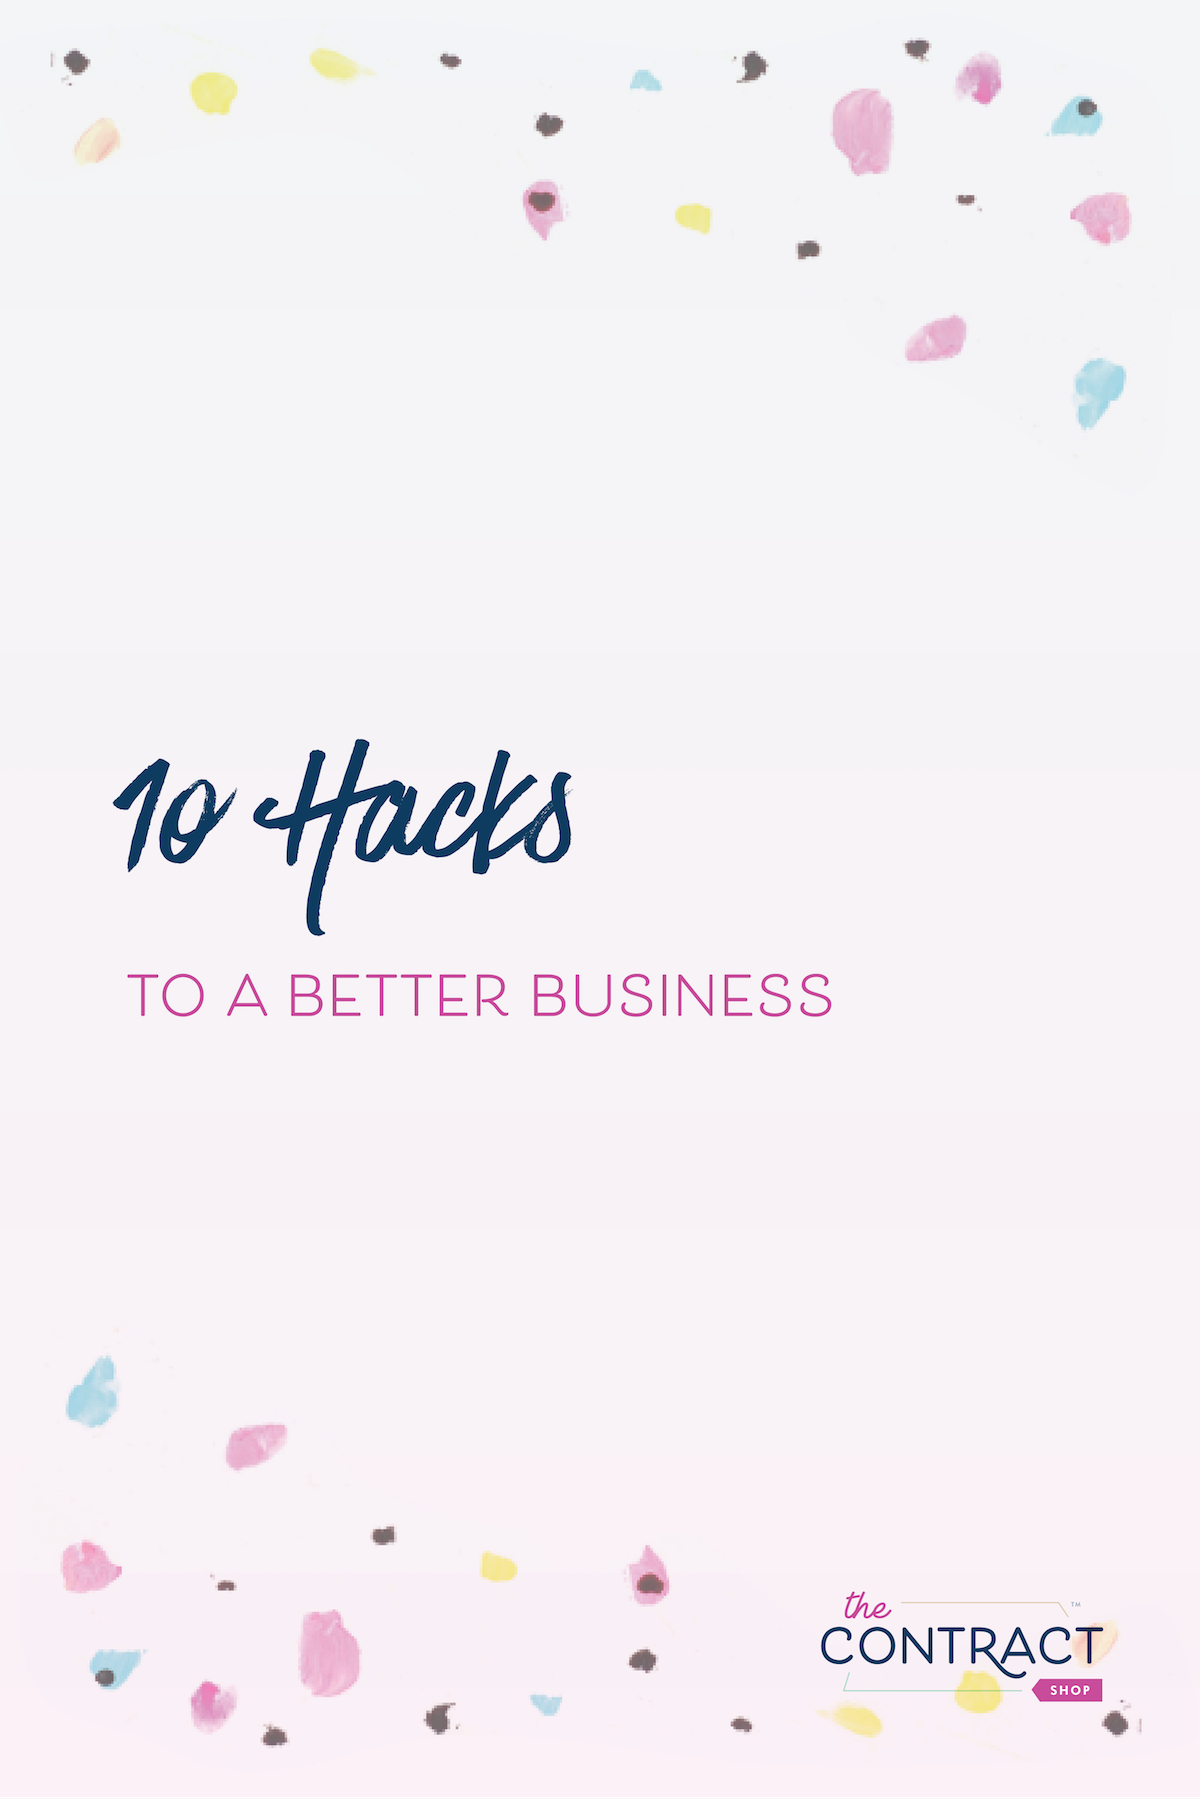 Whether you're a new business owner or a seasoned one, you will have a slow season. Here are 10 hacks to a better business, so you can get more clients and be more focused. #smallbusiness #creative #entrepreneur